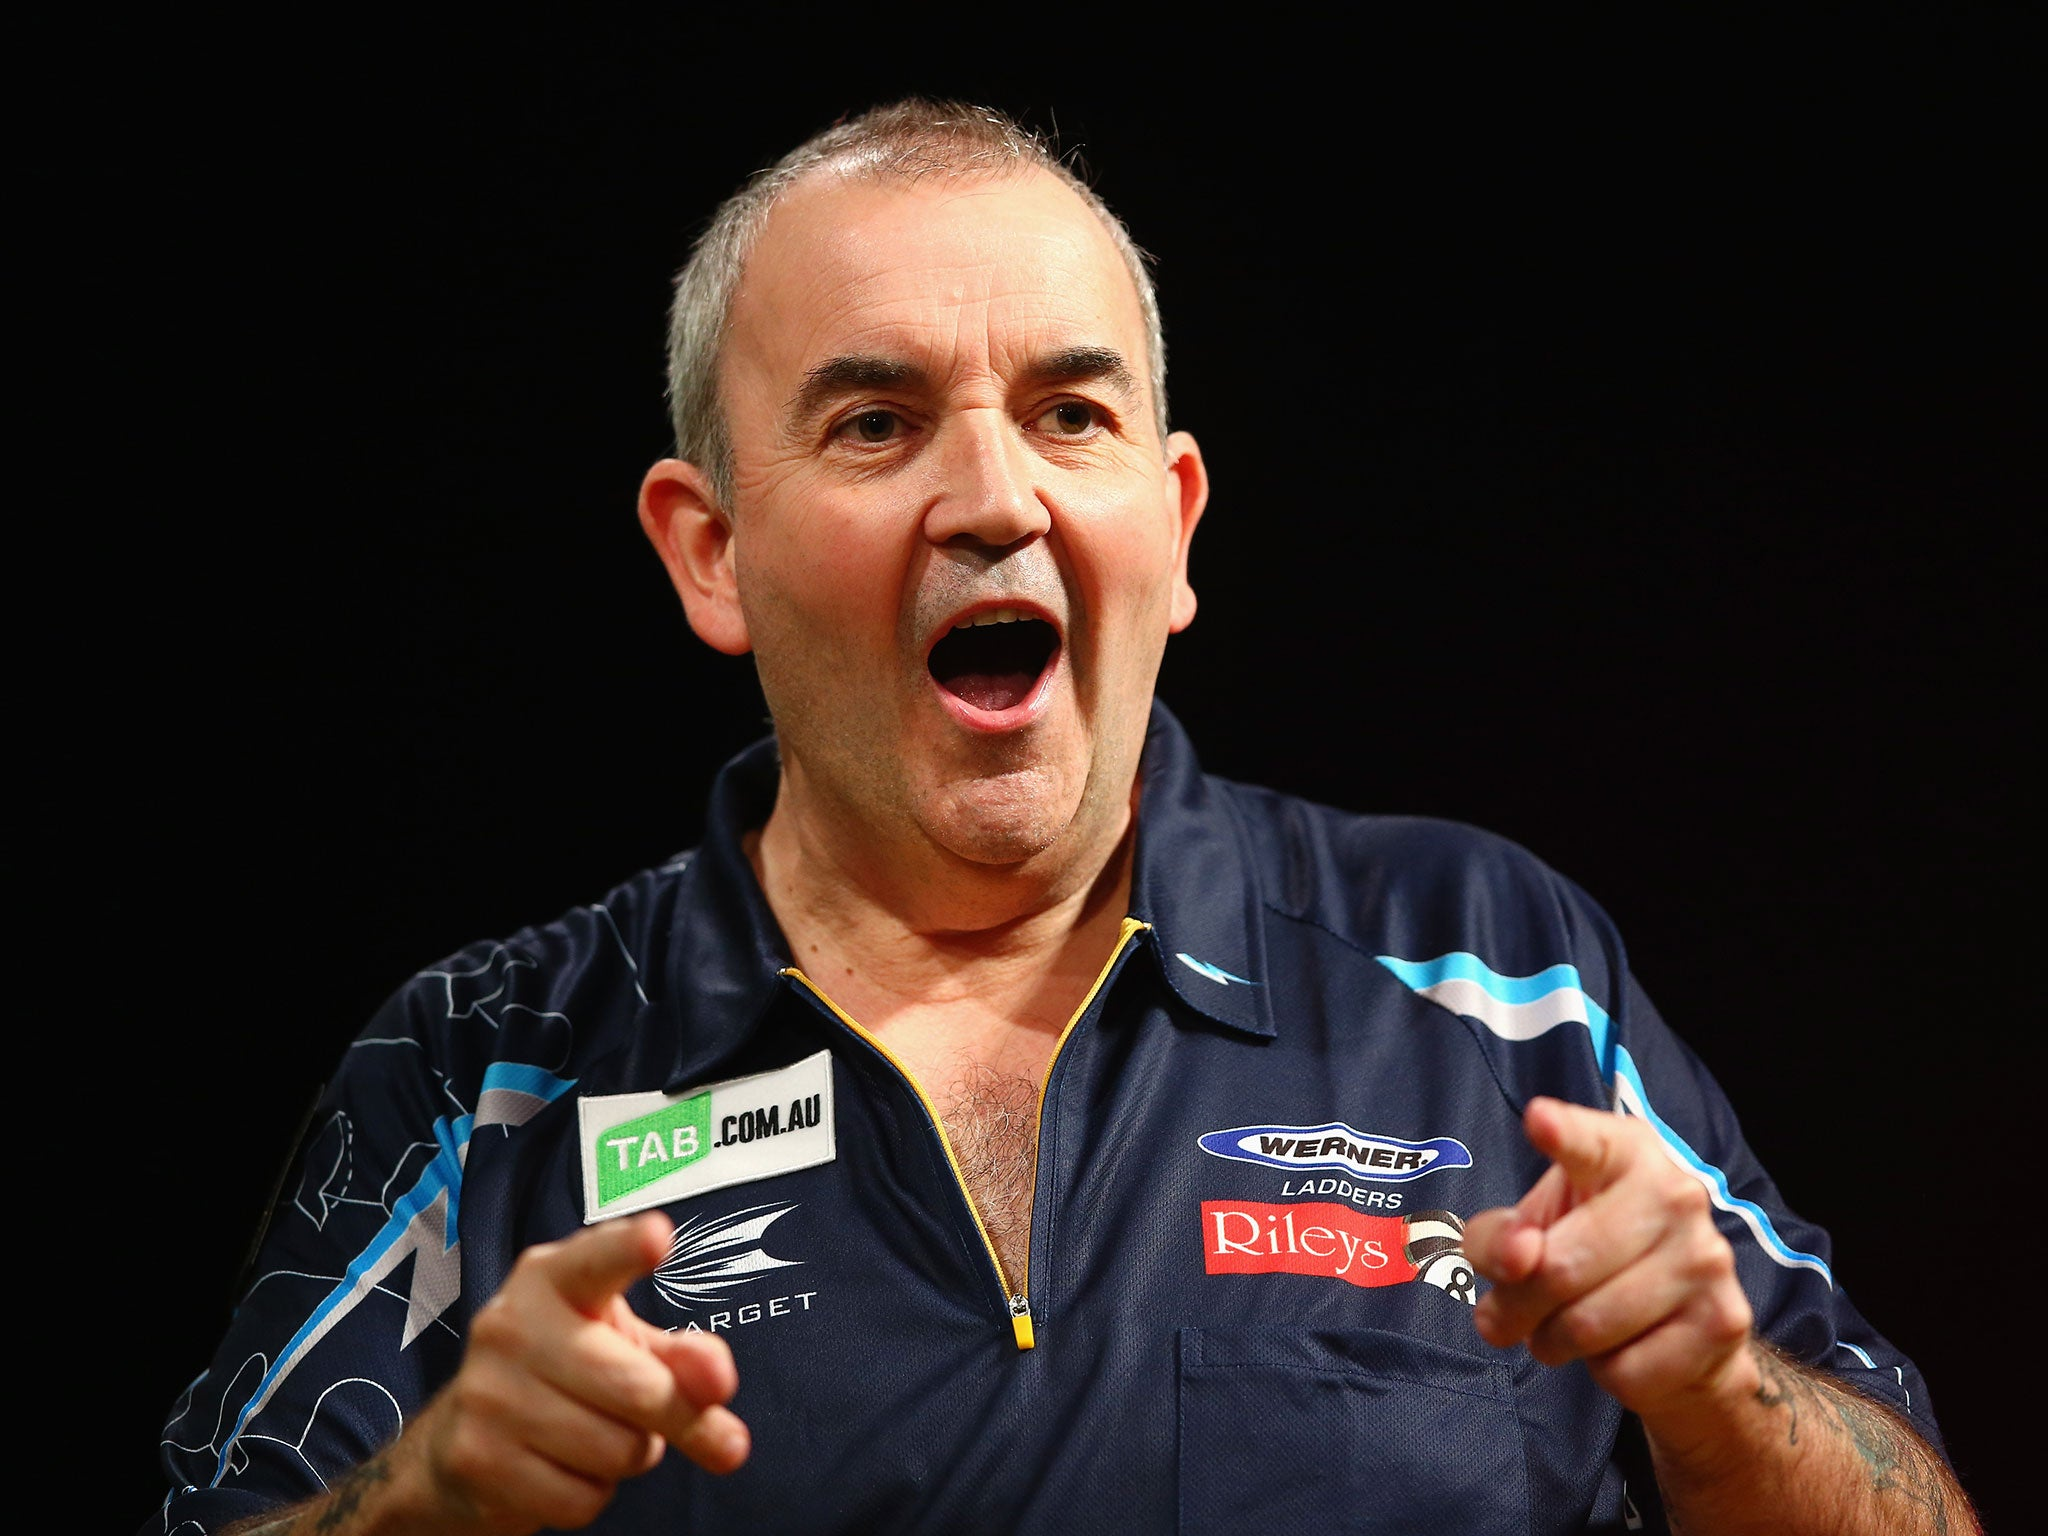 The 56-year old son of father (?) and mother(?), 172 cm tall Phil Taylor in 2017 photo